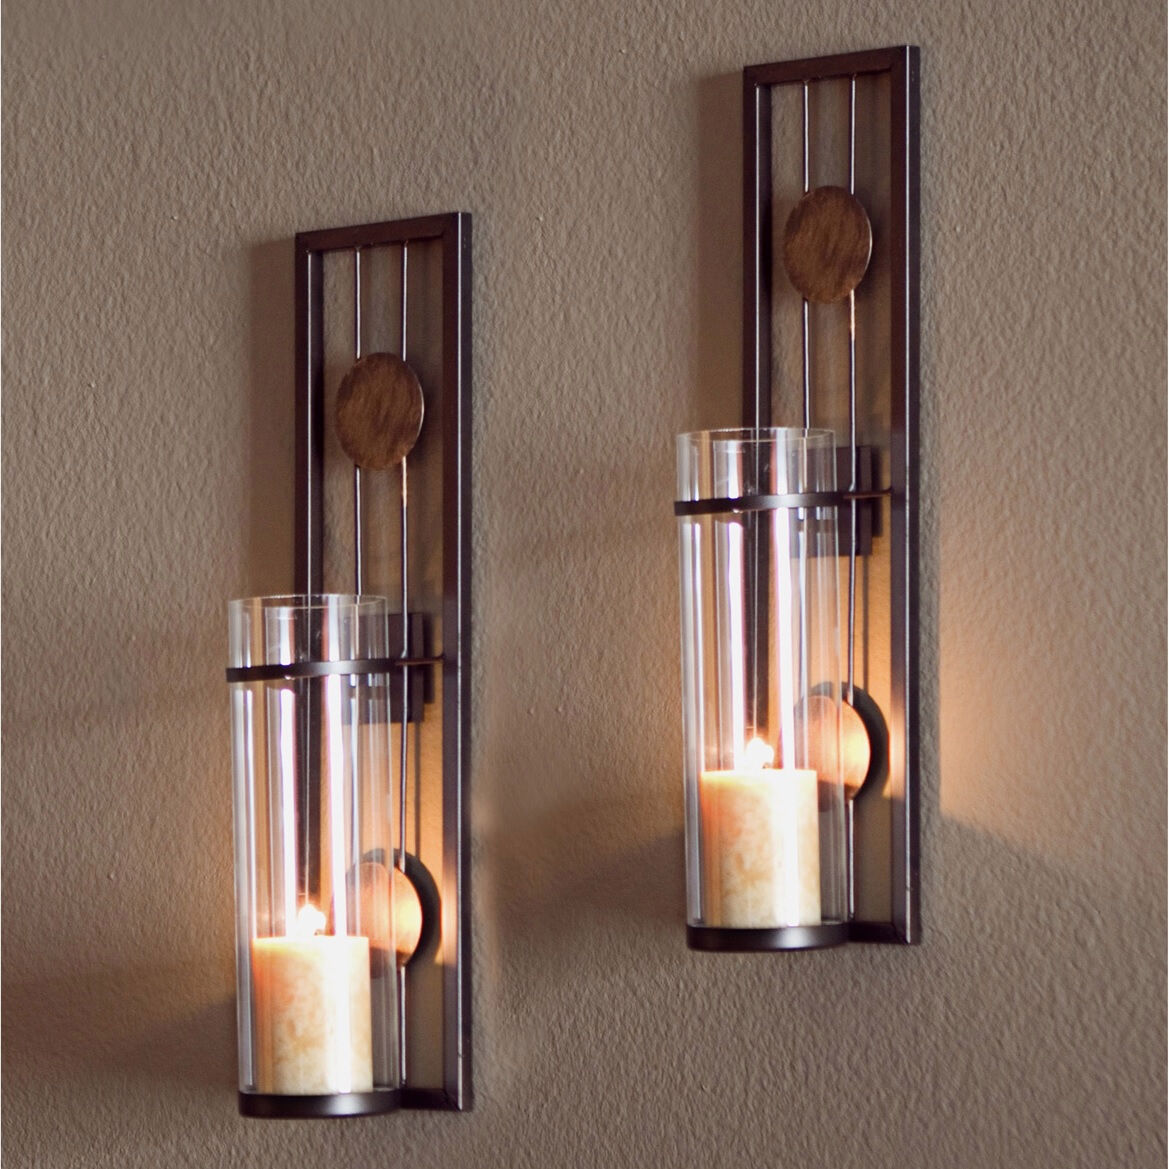 glass wall sconce candle holder 15371 metal scrollwork With kitchen cabinets lowes with metal wall sconces candle holders